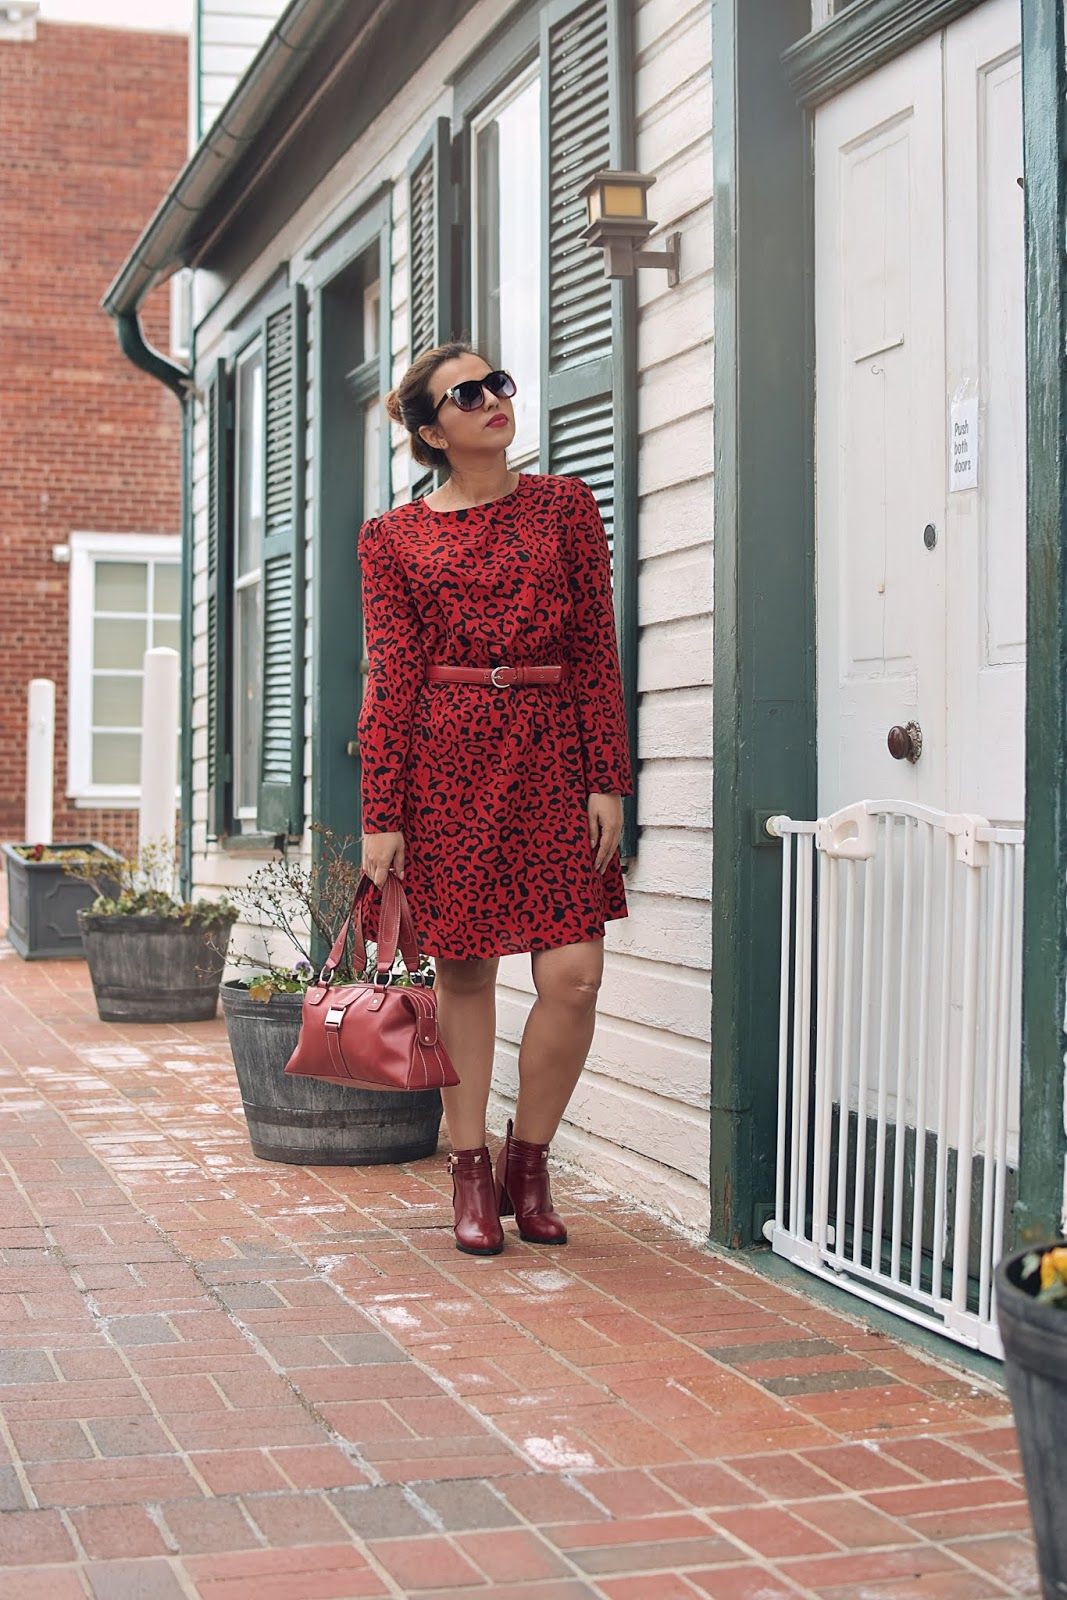 Red Leopard Dress-MariEstilo-look of the day-street style-dcblogger-animalprint-tendencias-vestidos-moda primavera 2019-